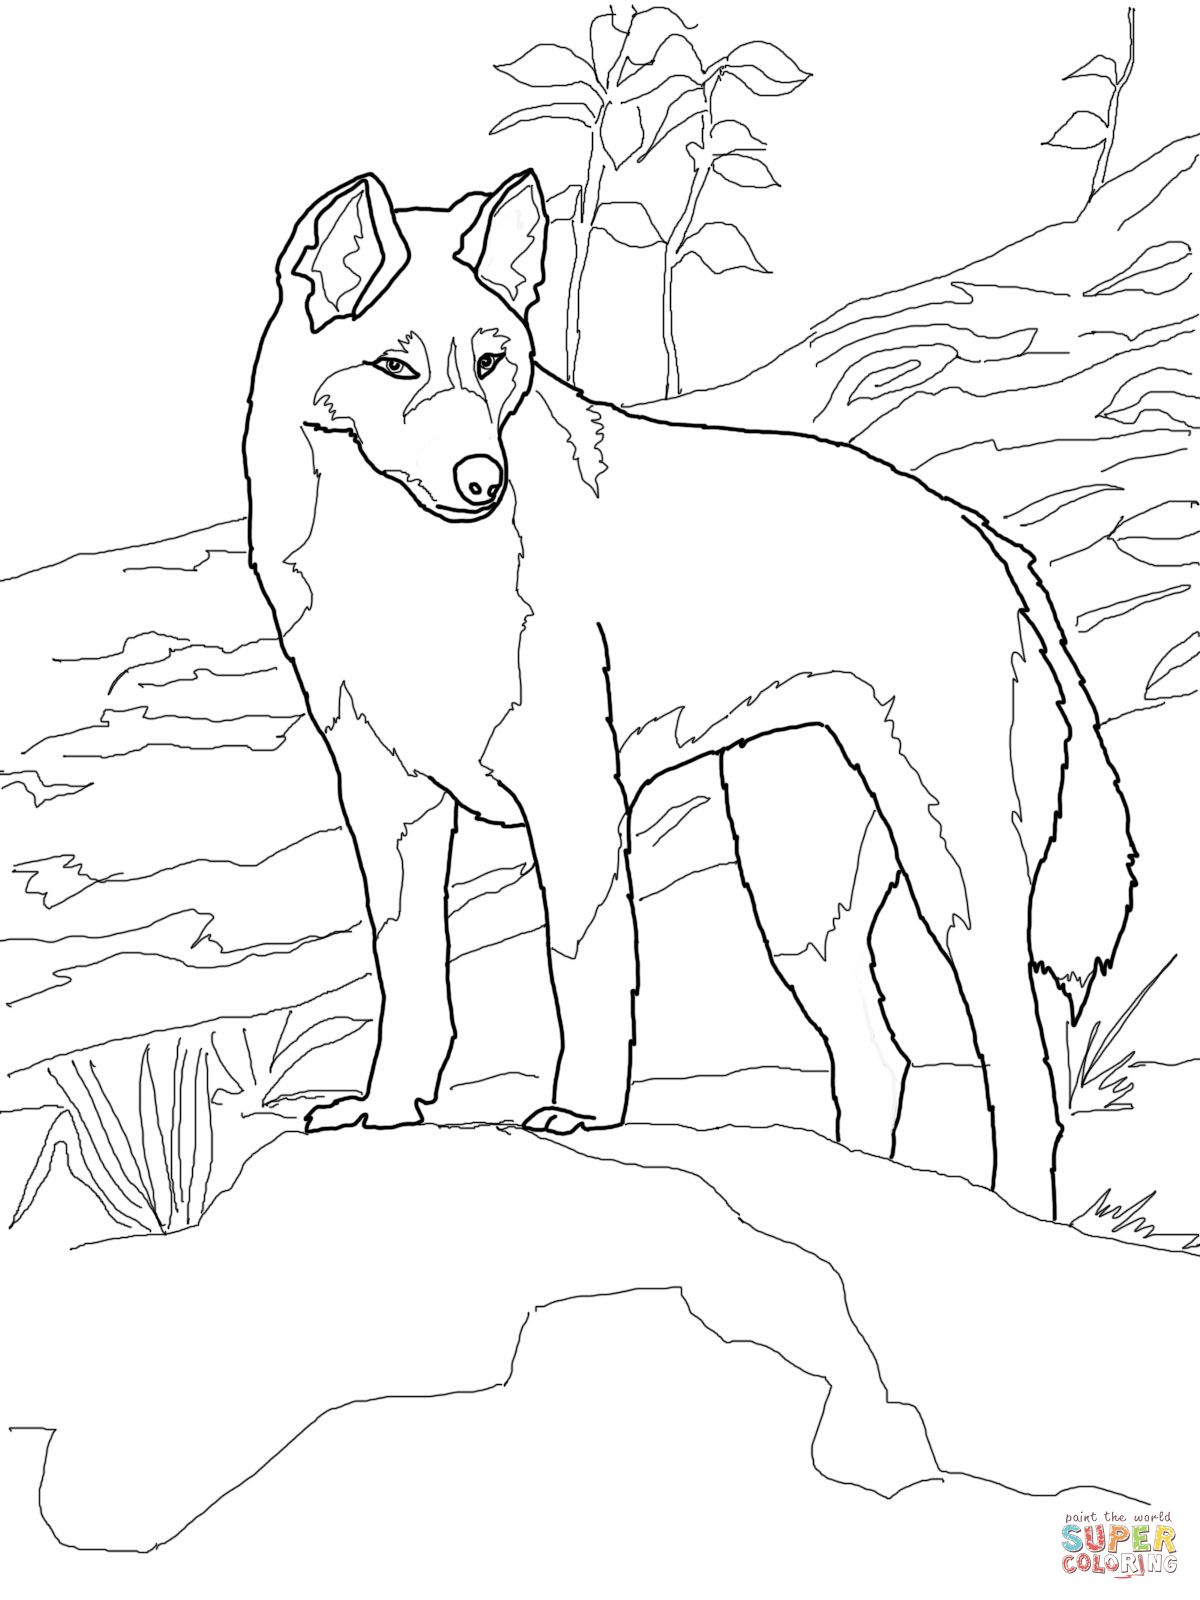 Dingo From Australia Coloring Page